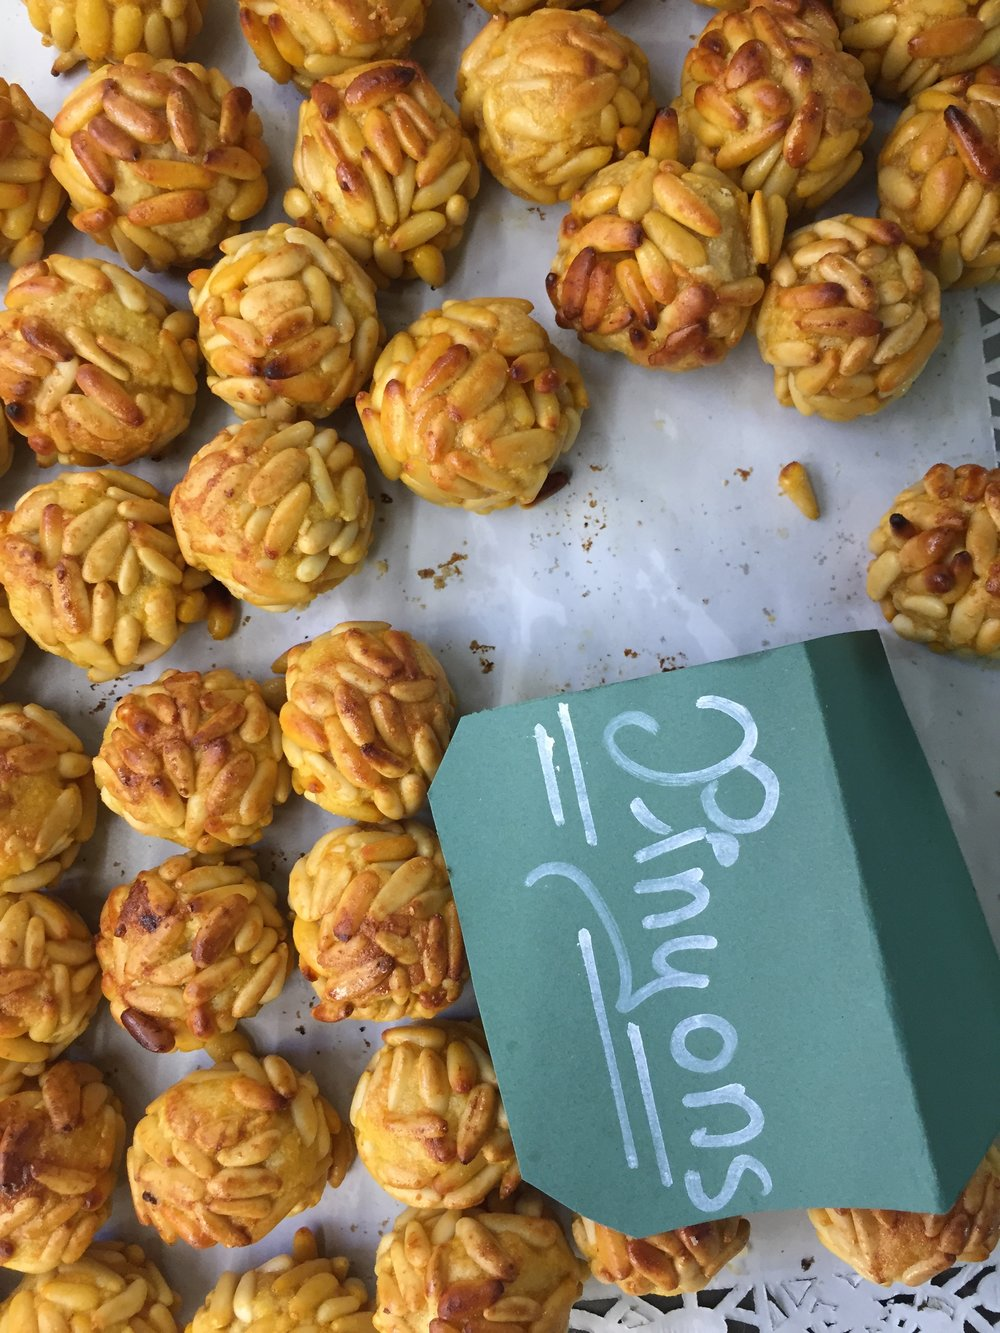 Marzipan surrounded by Pine Nuts